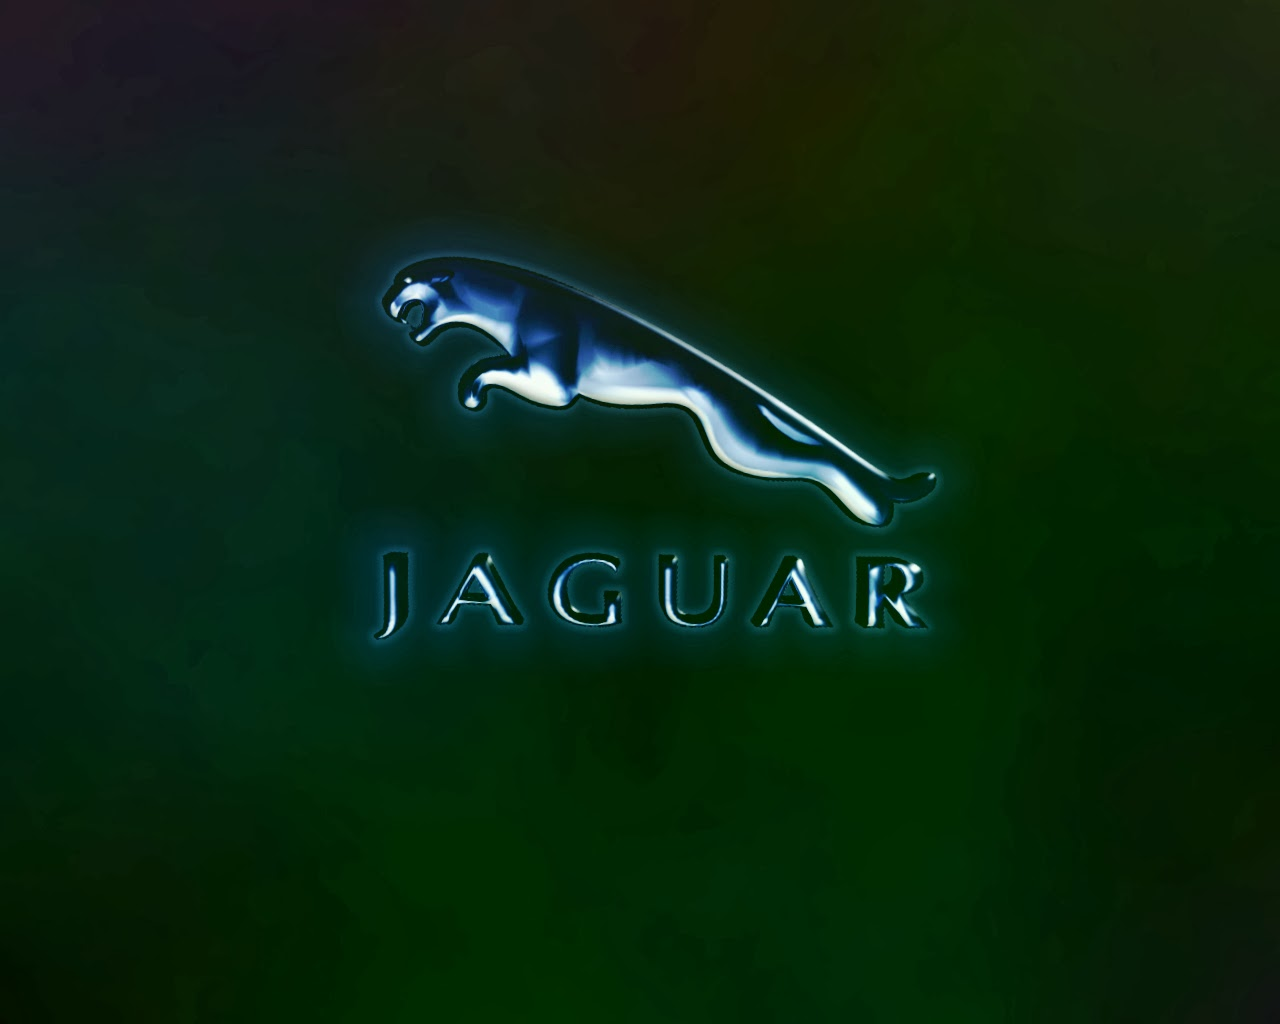 Jaguares Logo Jaguar Goes For Puma Chiever Chiever Jaguar Logos Picture And Or Photo File Uady